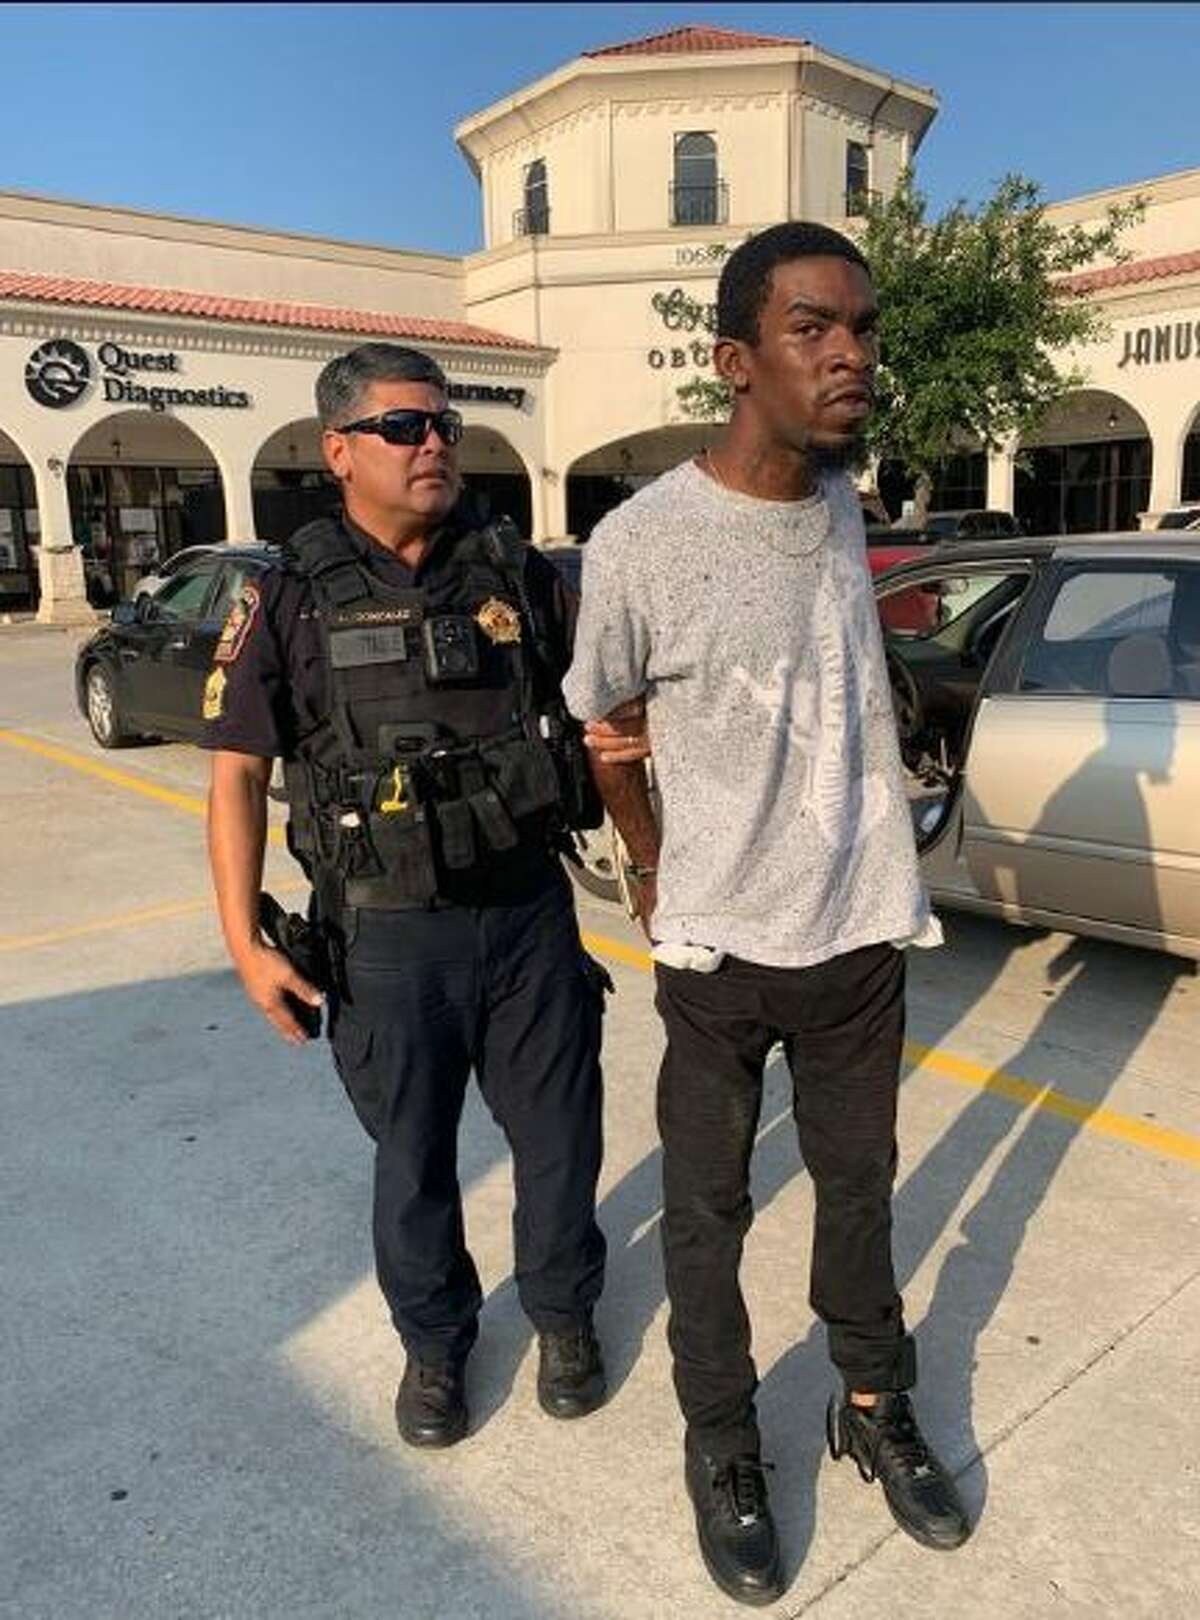 Justin Archangel, 22, was taken in by police yesterday afternoon on the 10600 block of Jones Rd. He is the fourth of four suspects allegedly involved in the Cypress case, according to a Pct. 5 Facebook post.